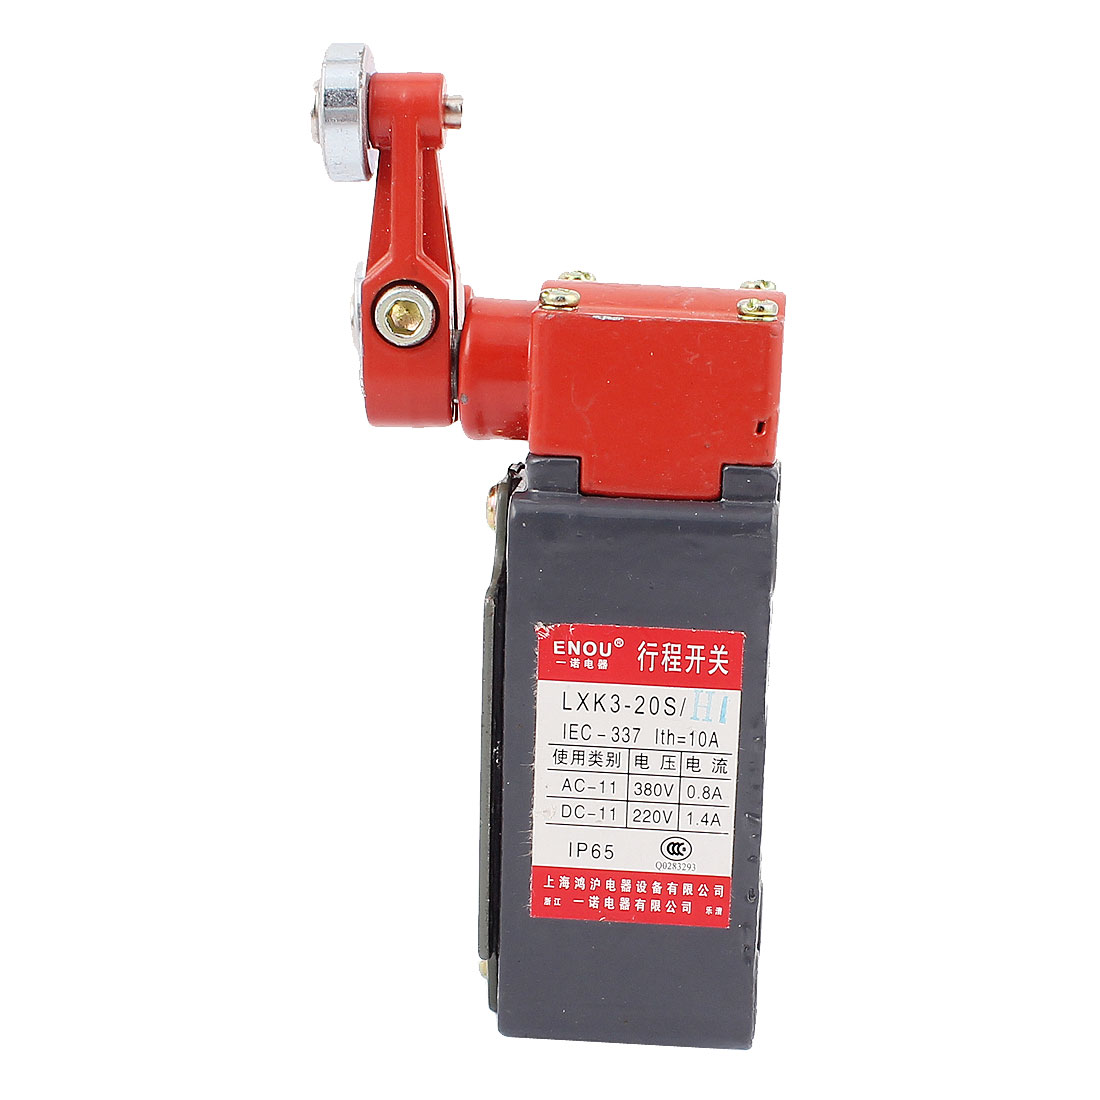 LXK3-20S/H1 Rotating Double Roller Lever Arm Enclosed Limit Switch